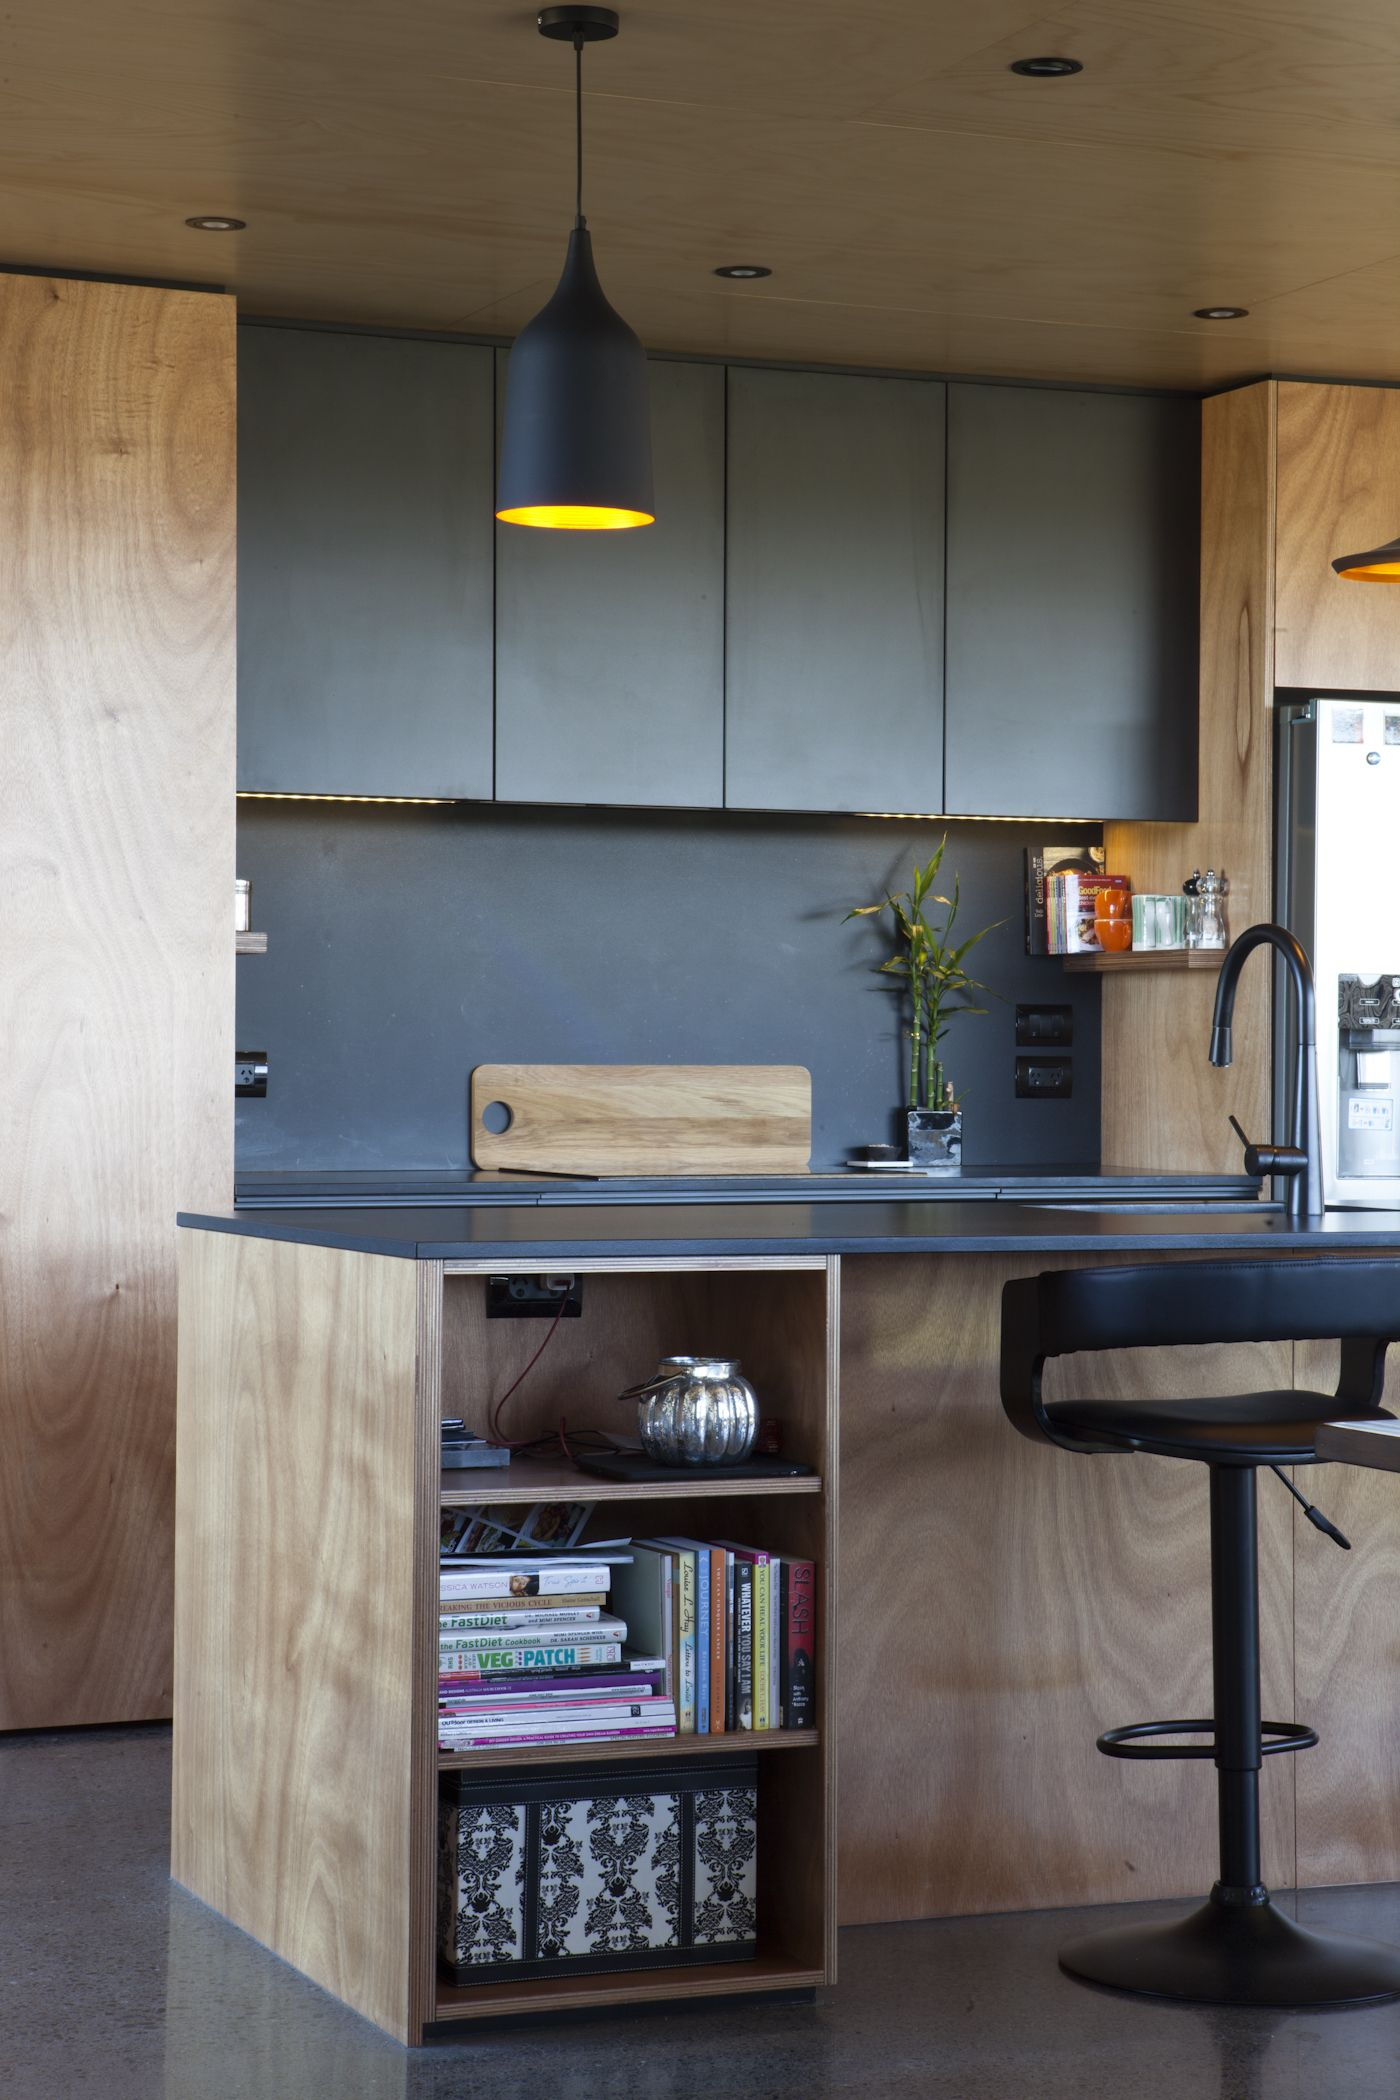 The Affordable Architect | Cocinas, Ideas de muebles y Plantilla de casa